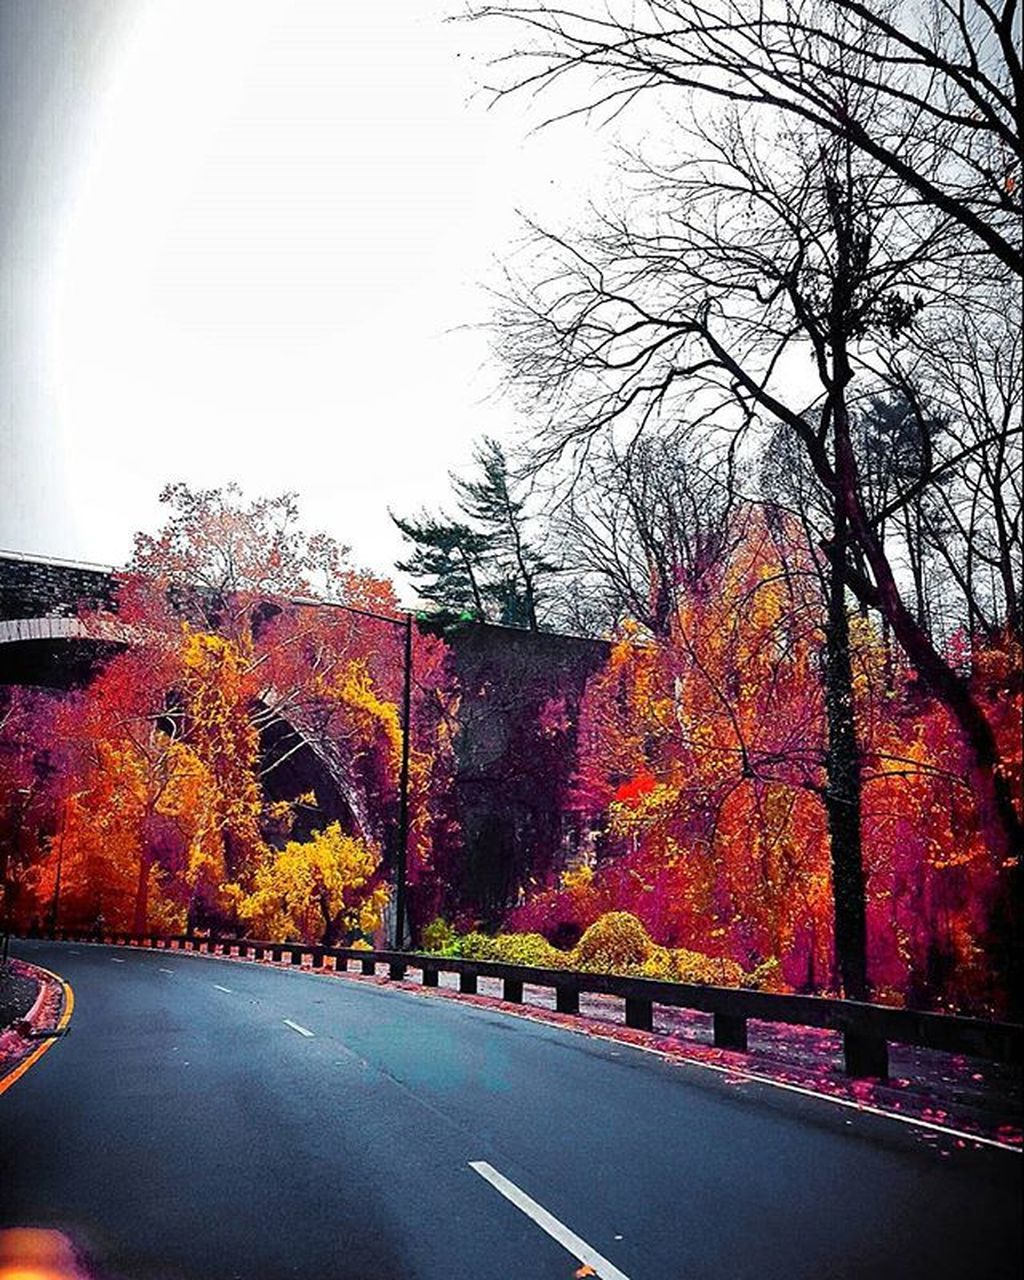 autumn, change, tree, leaf, road, the way forward, nature, day, tranquil scene, no people, beauty in nature, outdoors, scenics, tranquility, multi colored, growth, branch, architecture, sky, maple